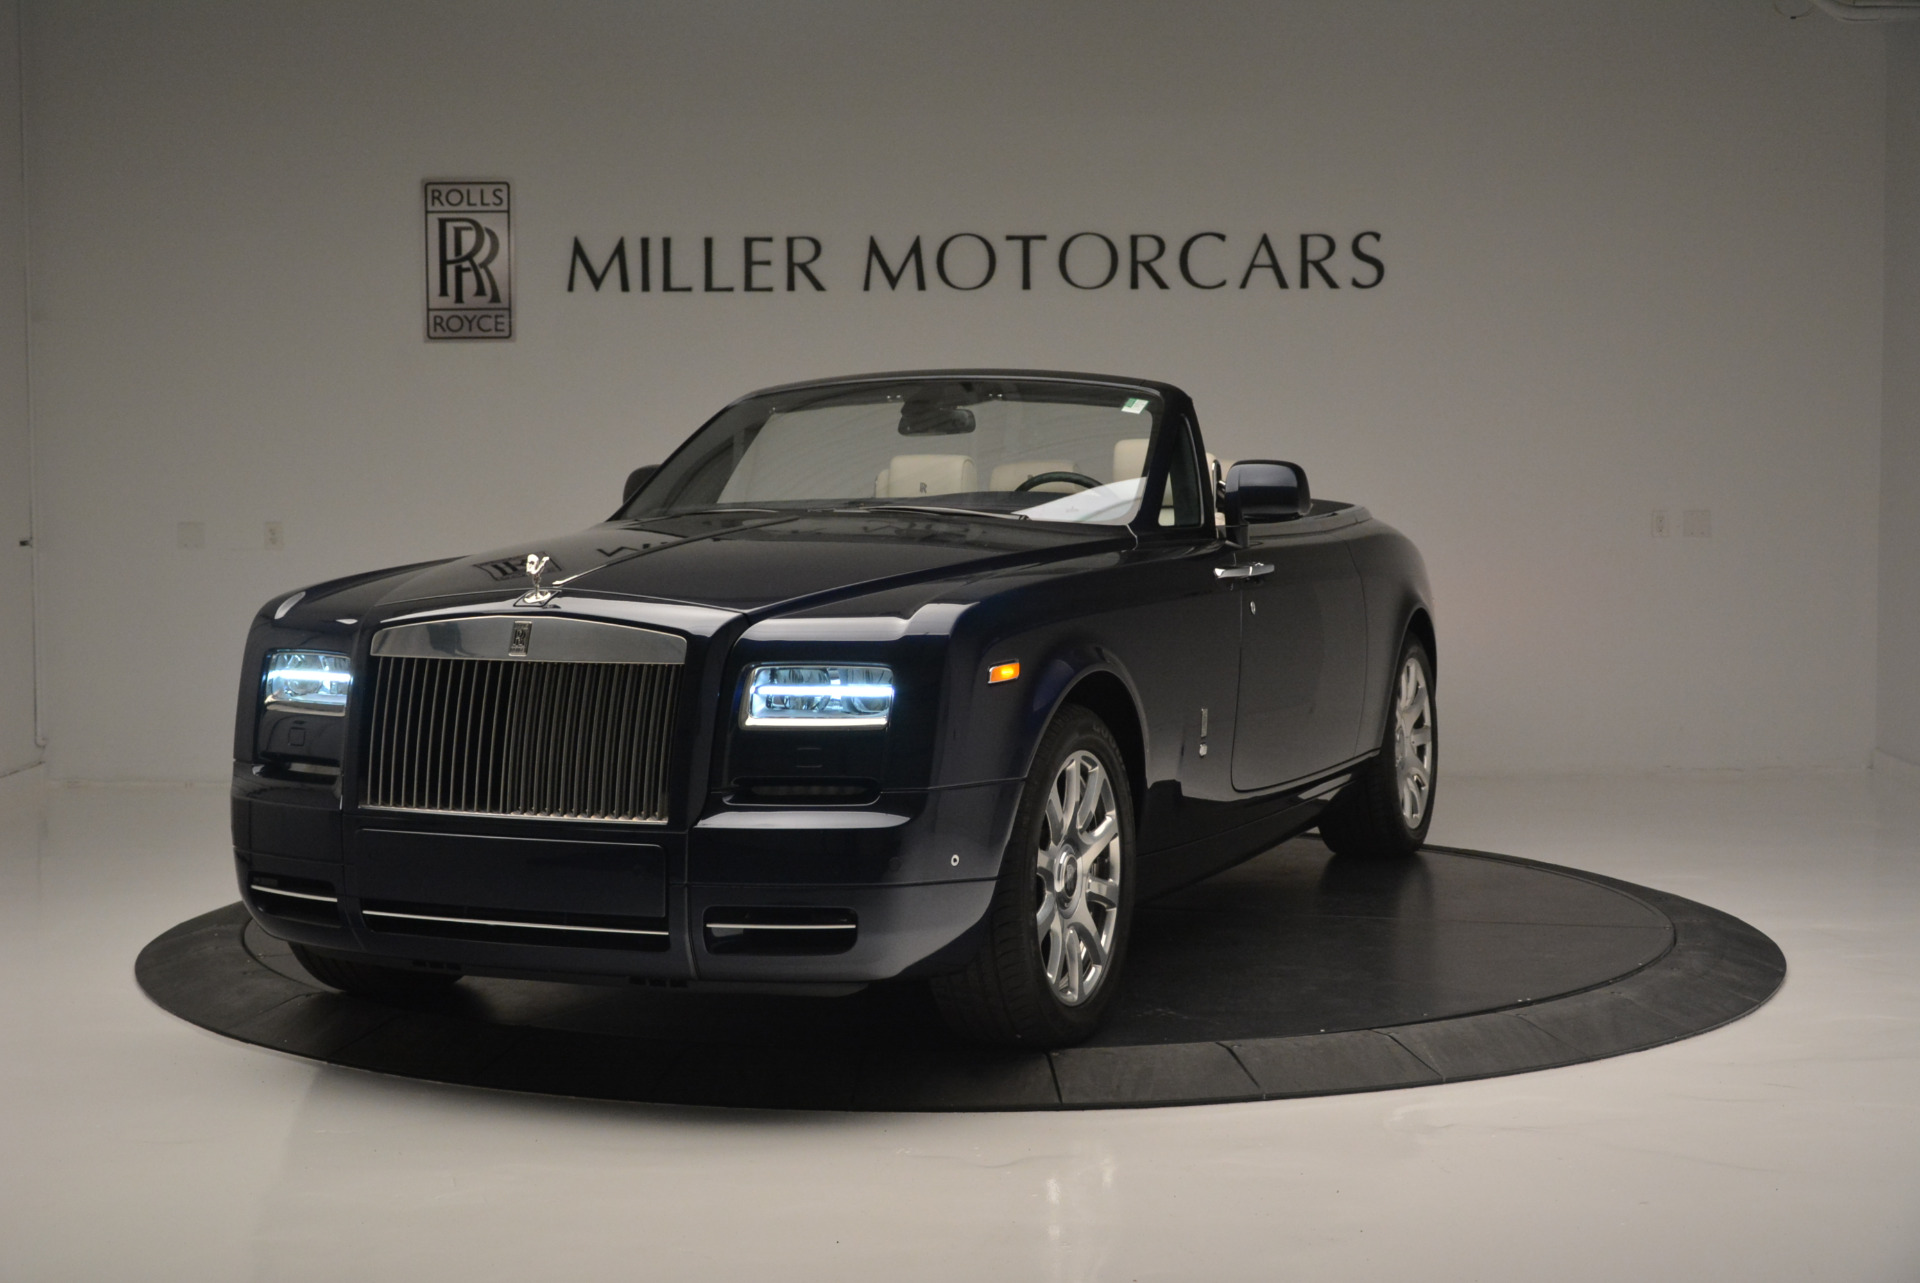 Used 2014 Rolls-Royce Phantom Drophead Coupe for sale Sold at Bugatti of Greenwich in Greenwich CT 06830 1